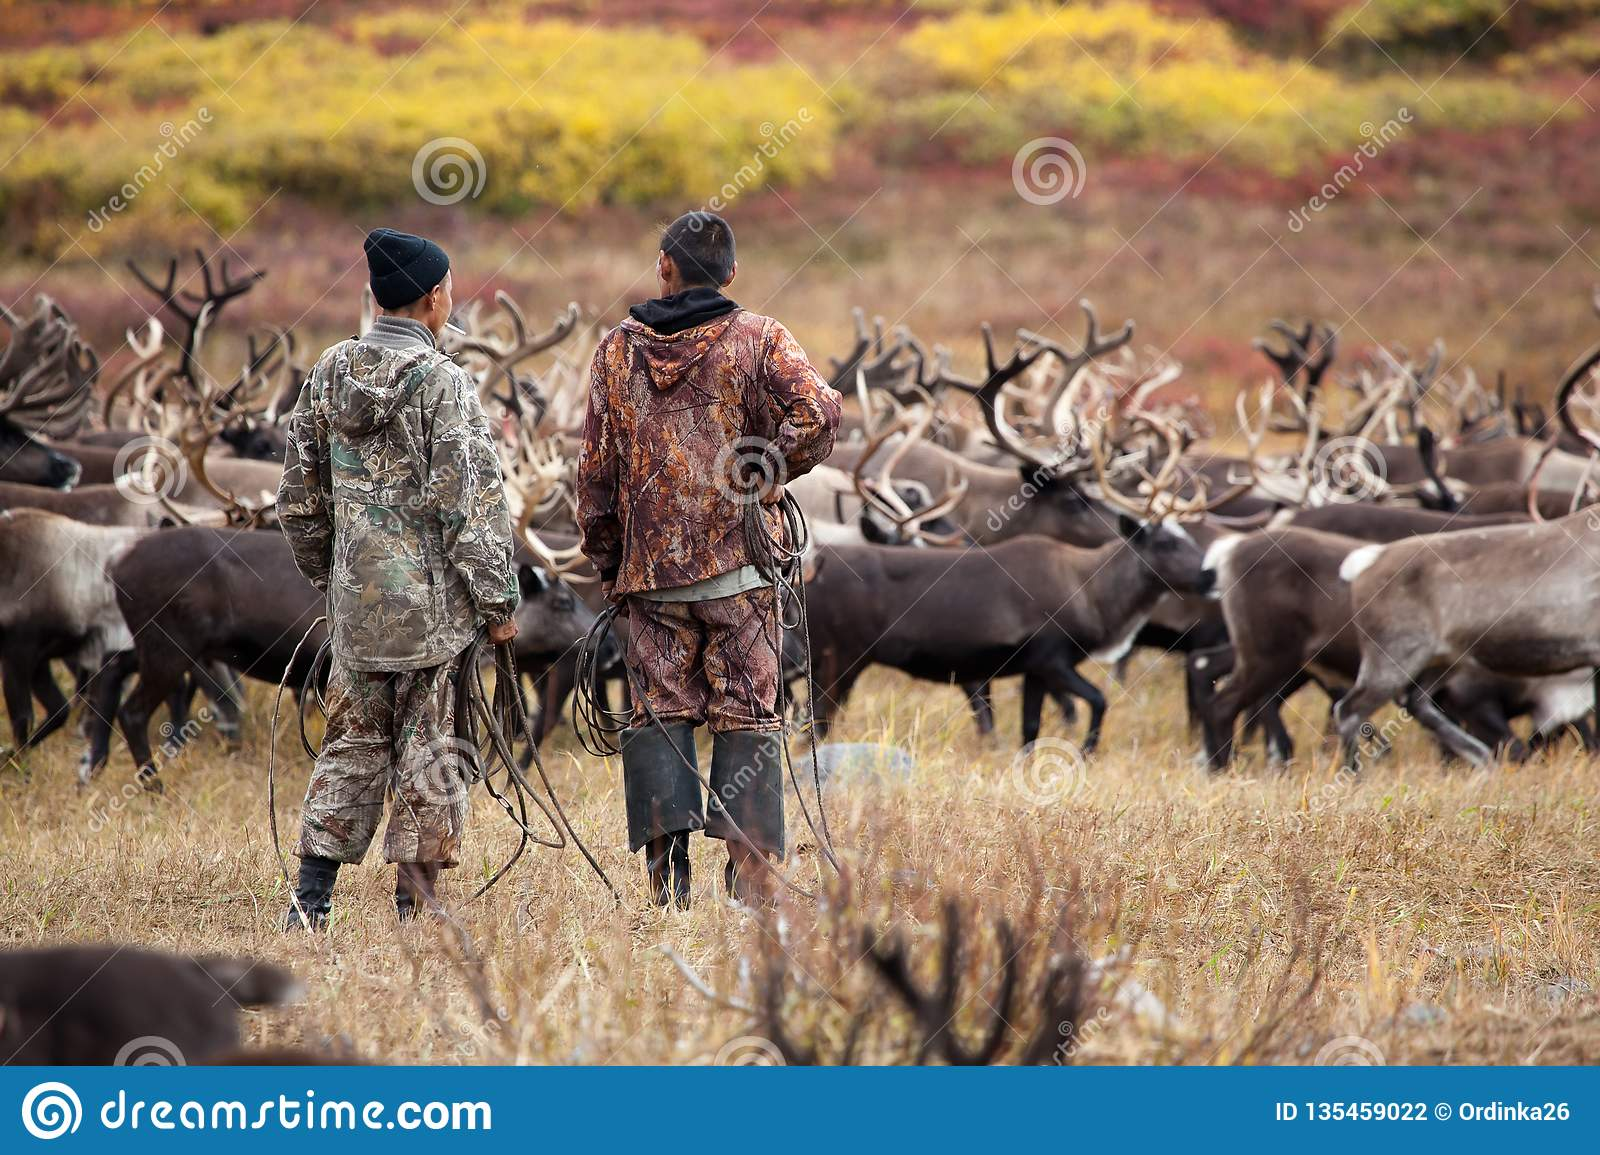 Two unidentifiable Evenk reindeer herders herdsman cowboy stand back and watch the herd of reindeer